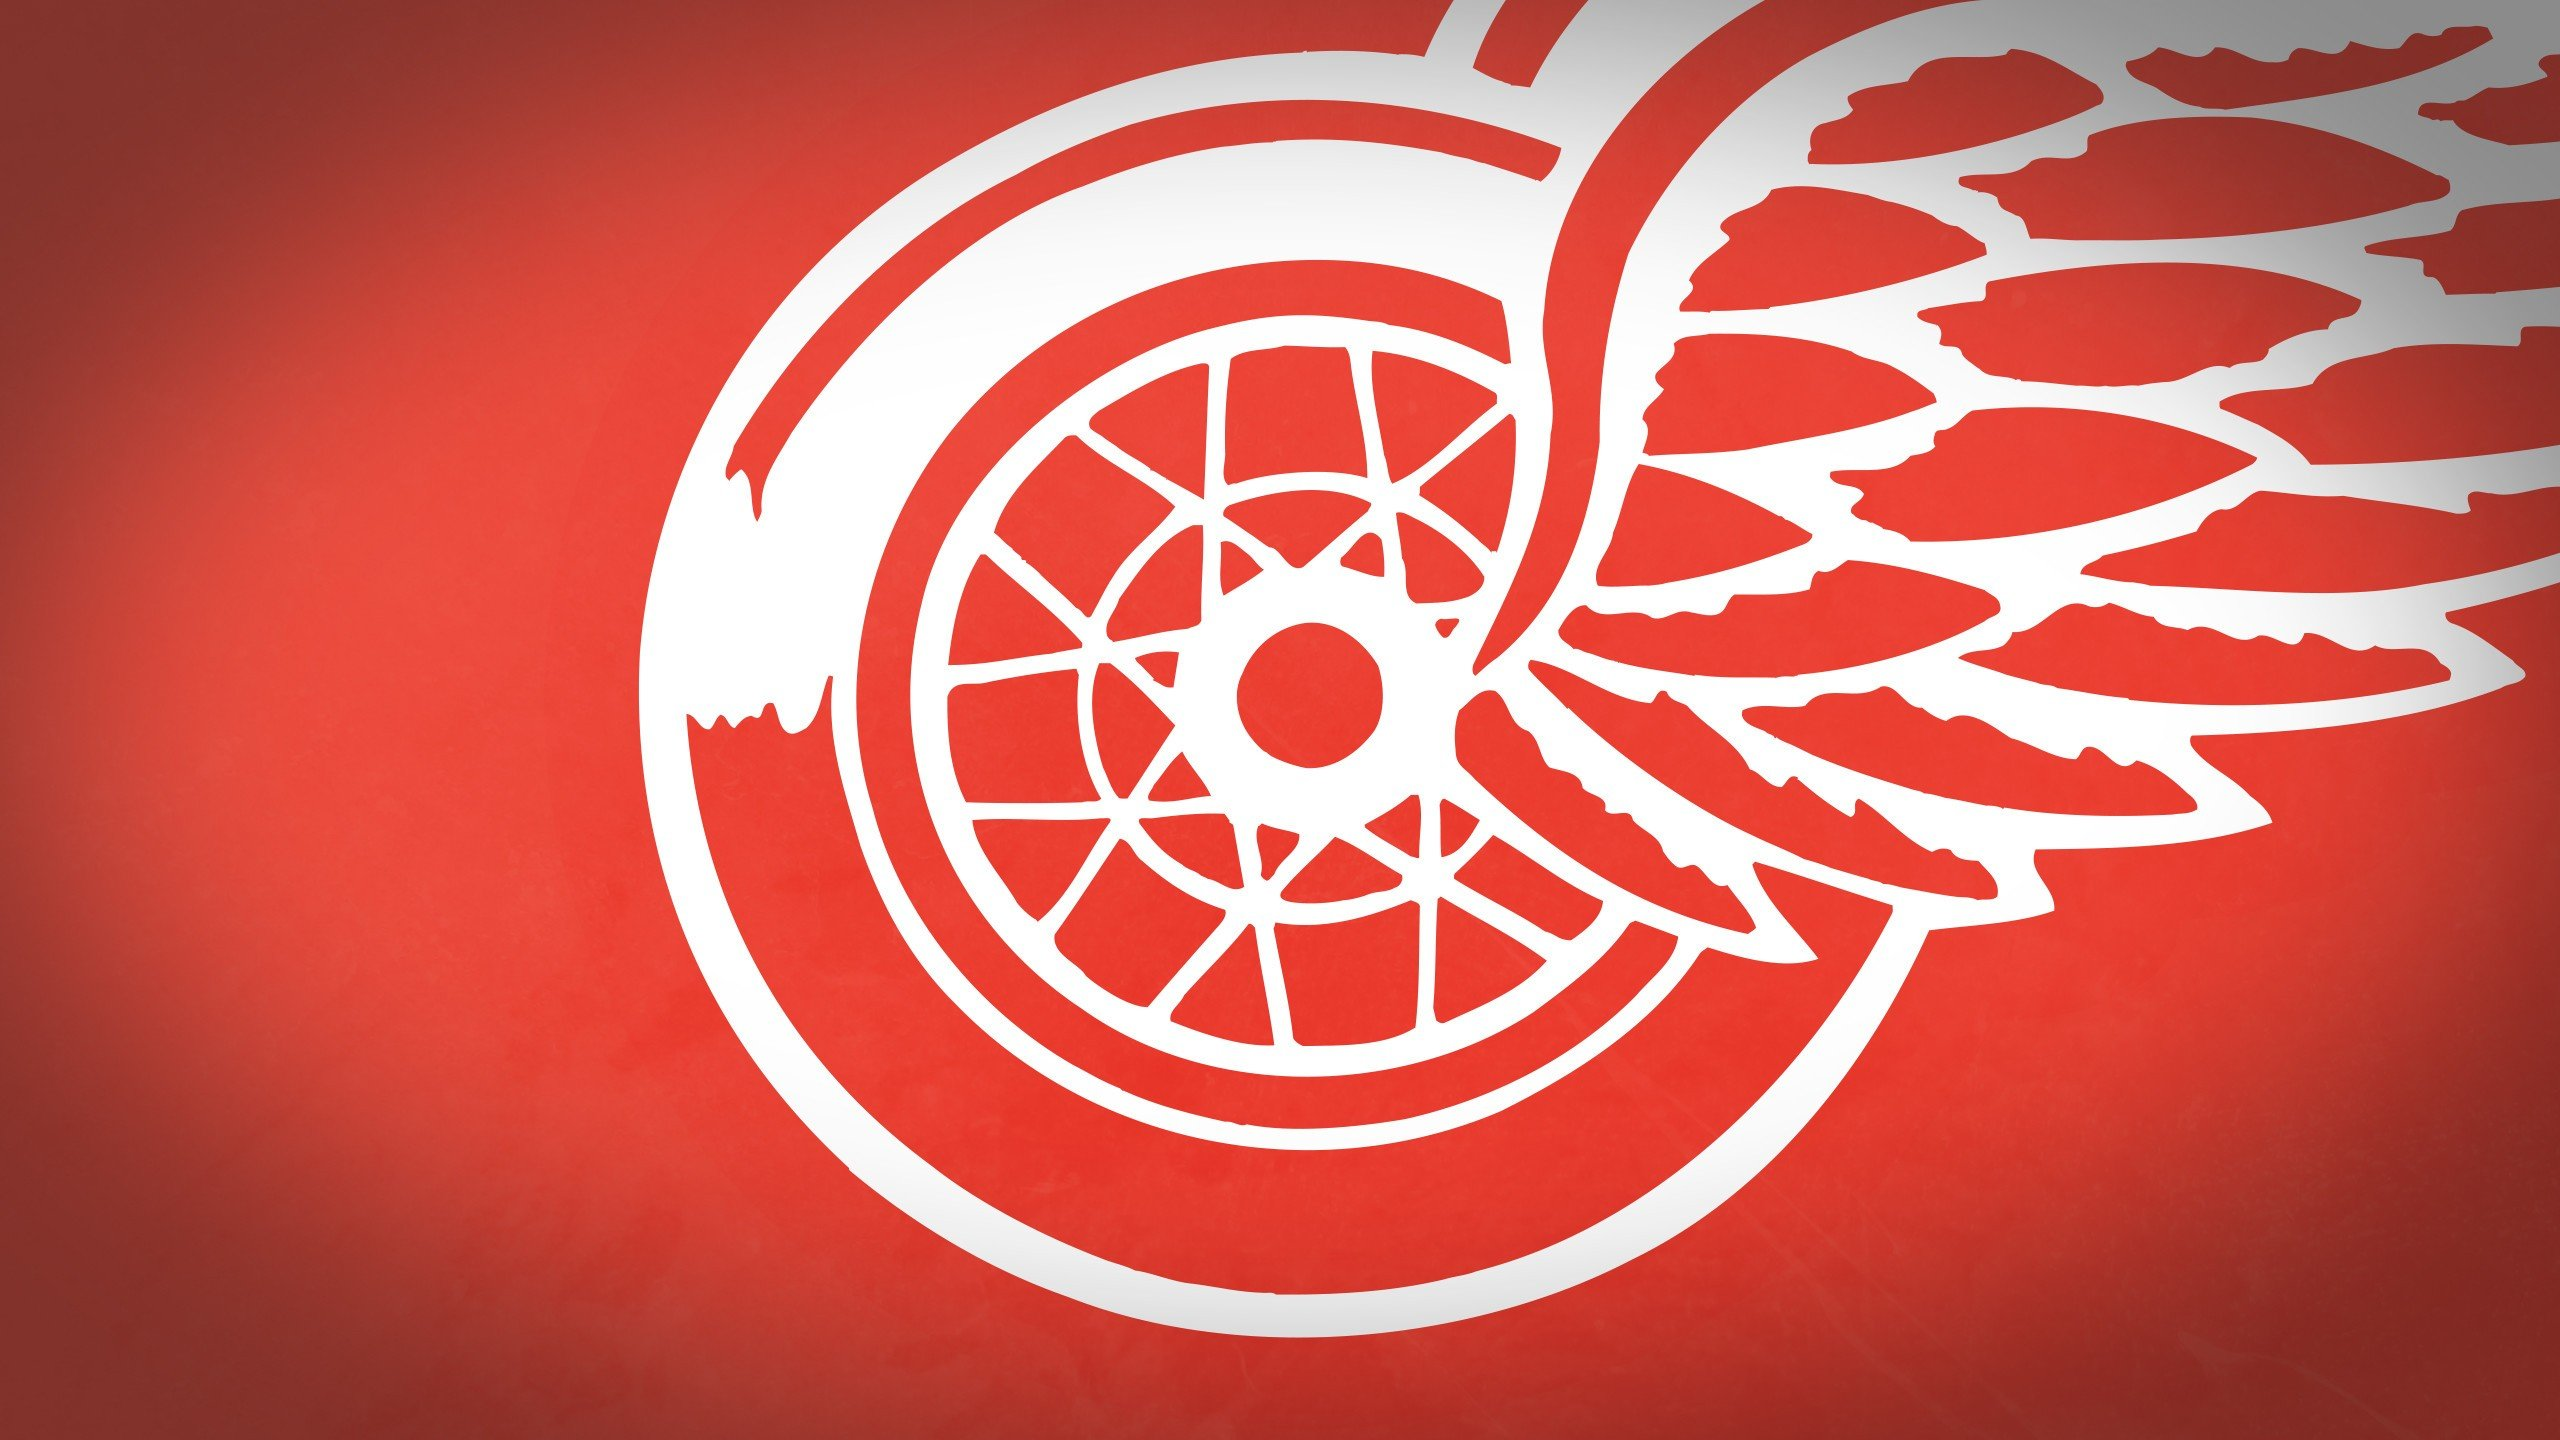 Detroit Red Wings Wallpapers 2560x1440 Desktop Backgrounds